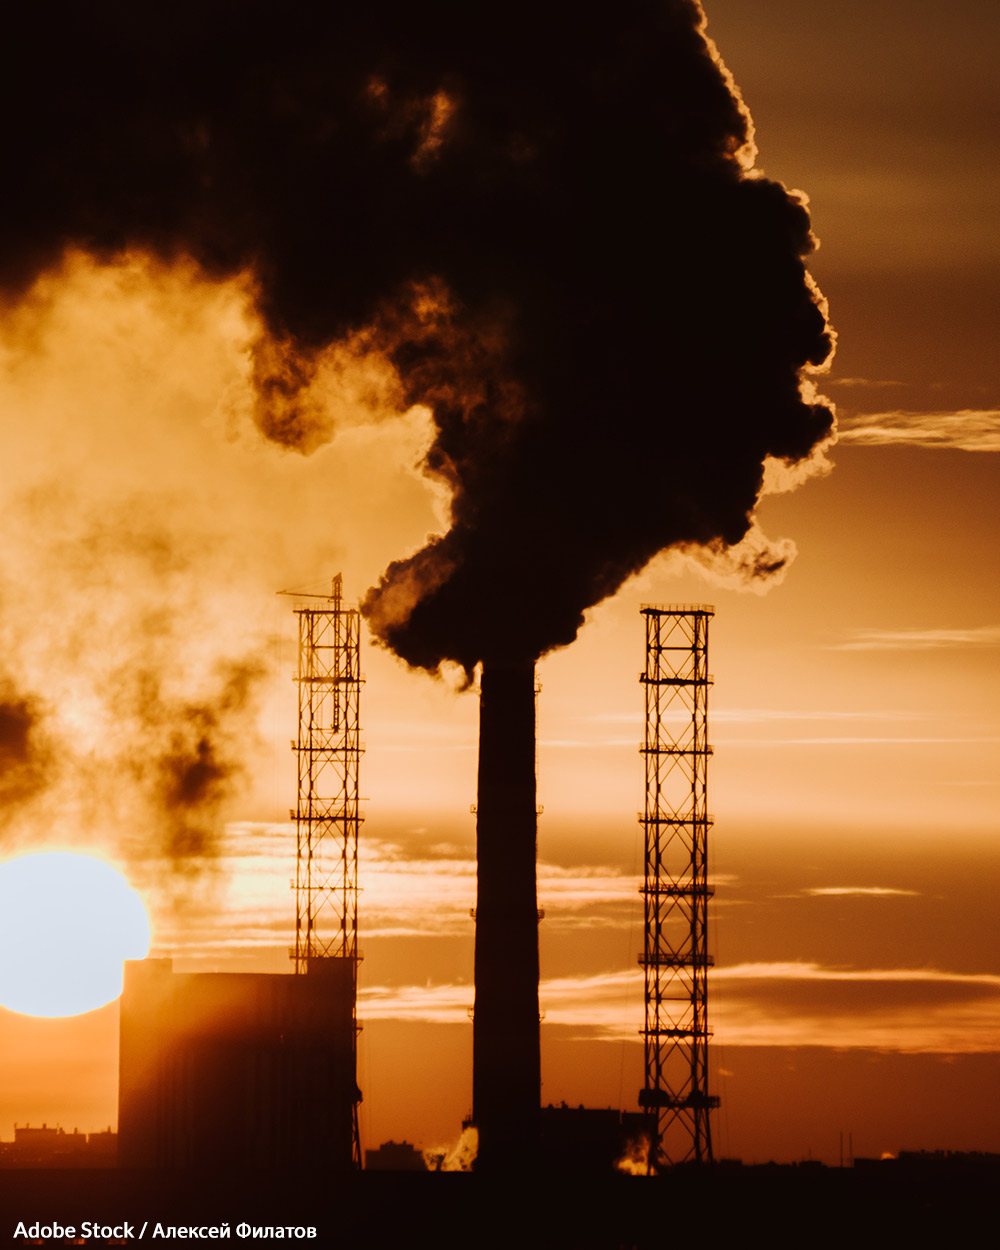 International action could reduce methane emissions enough to slow global warming.